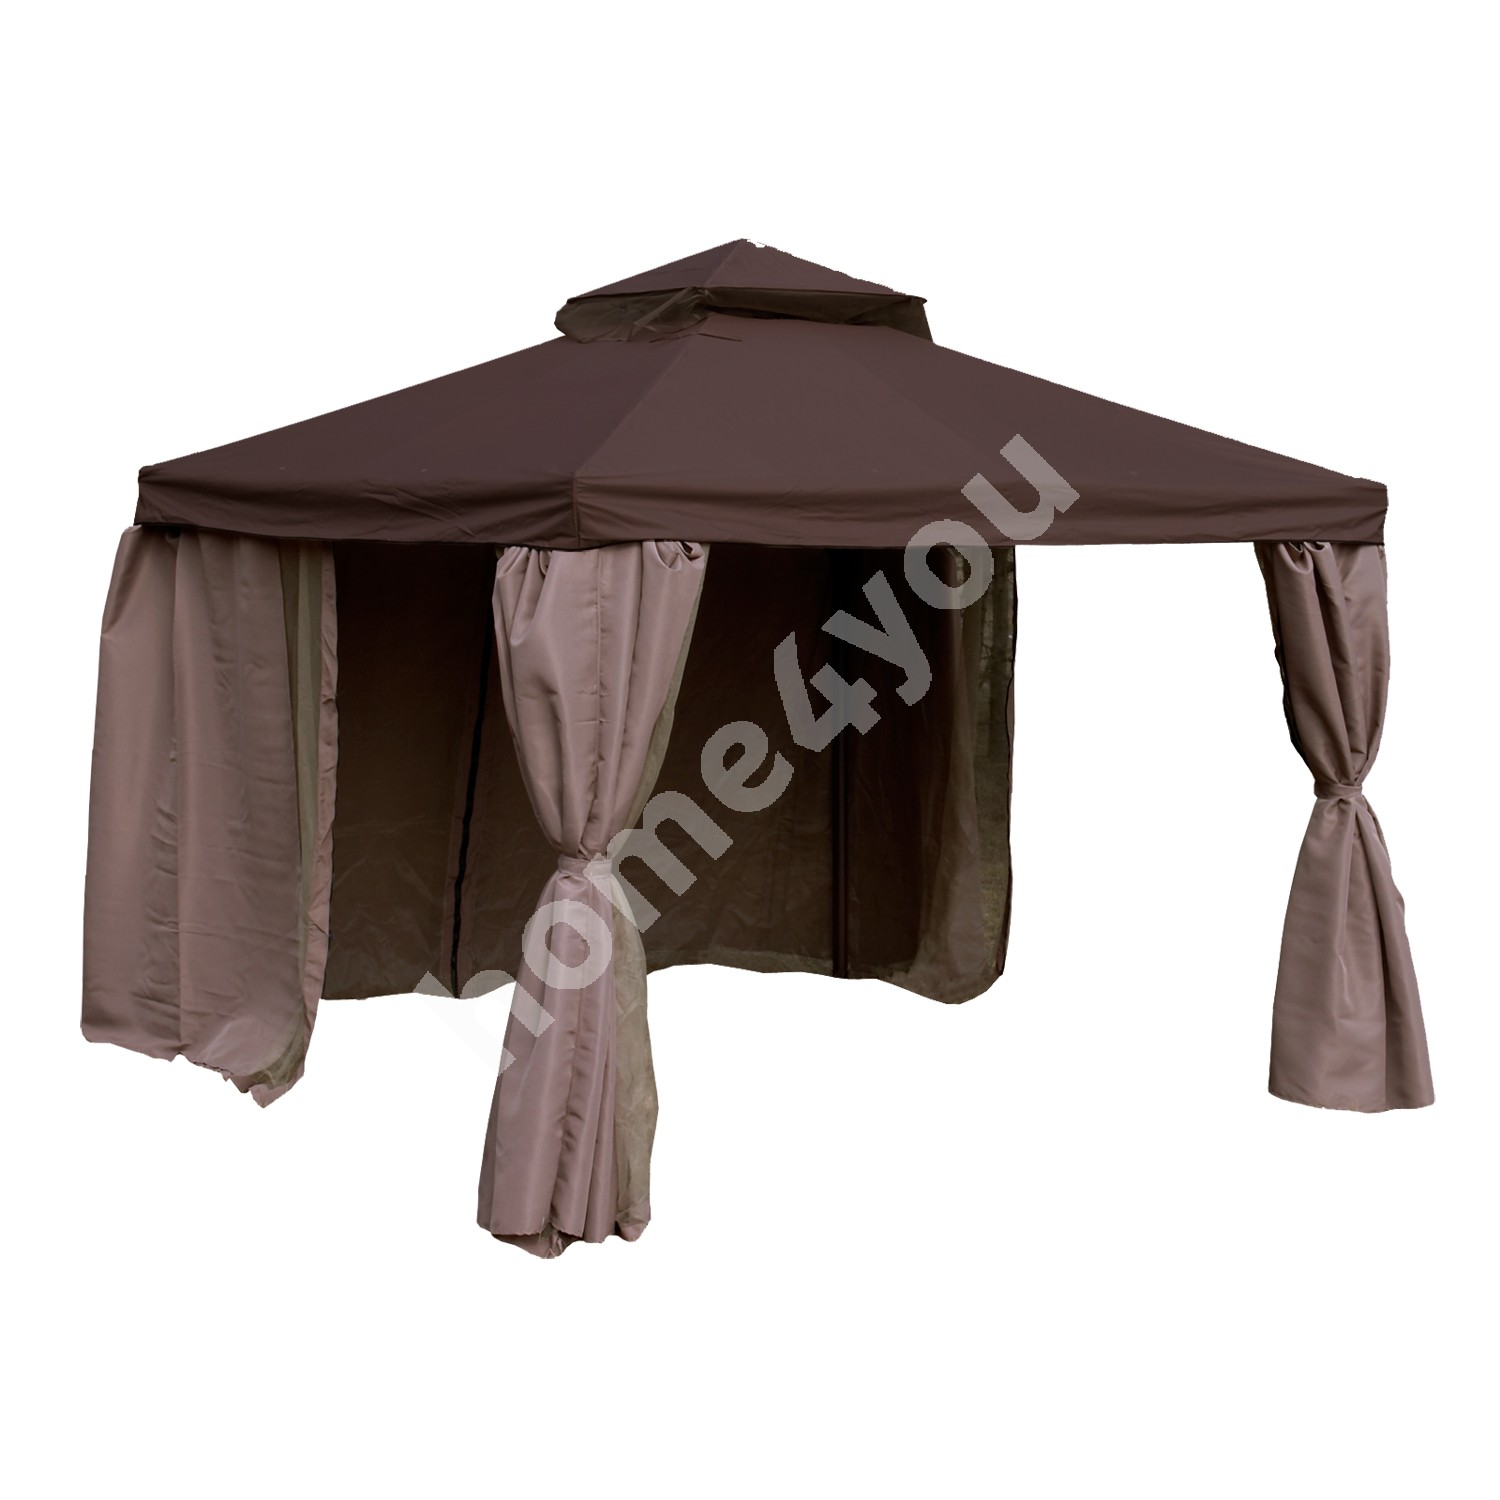 Gazebo LEGEND, 3x3m, aluminum frame, roof and side walls: polyester fabric, color: dark brown-beige